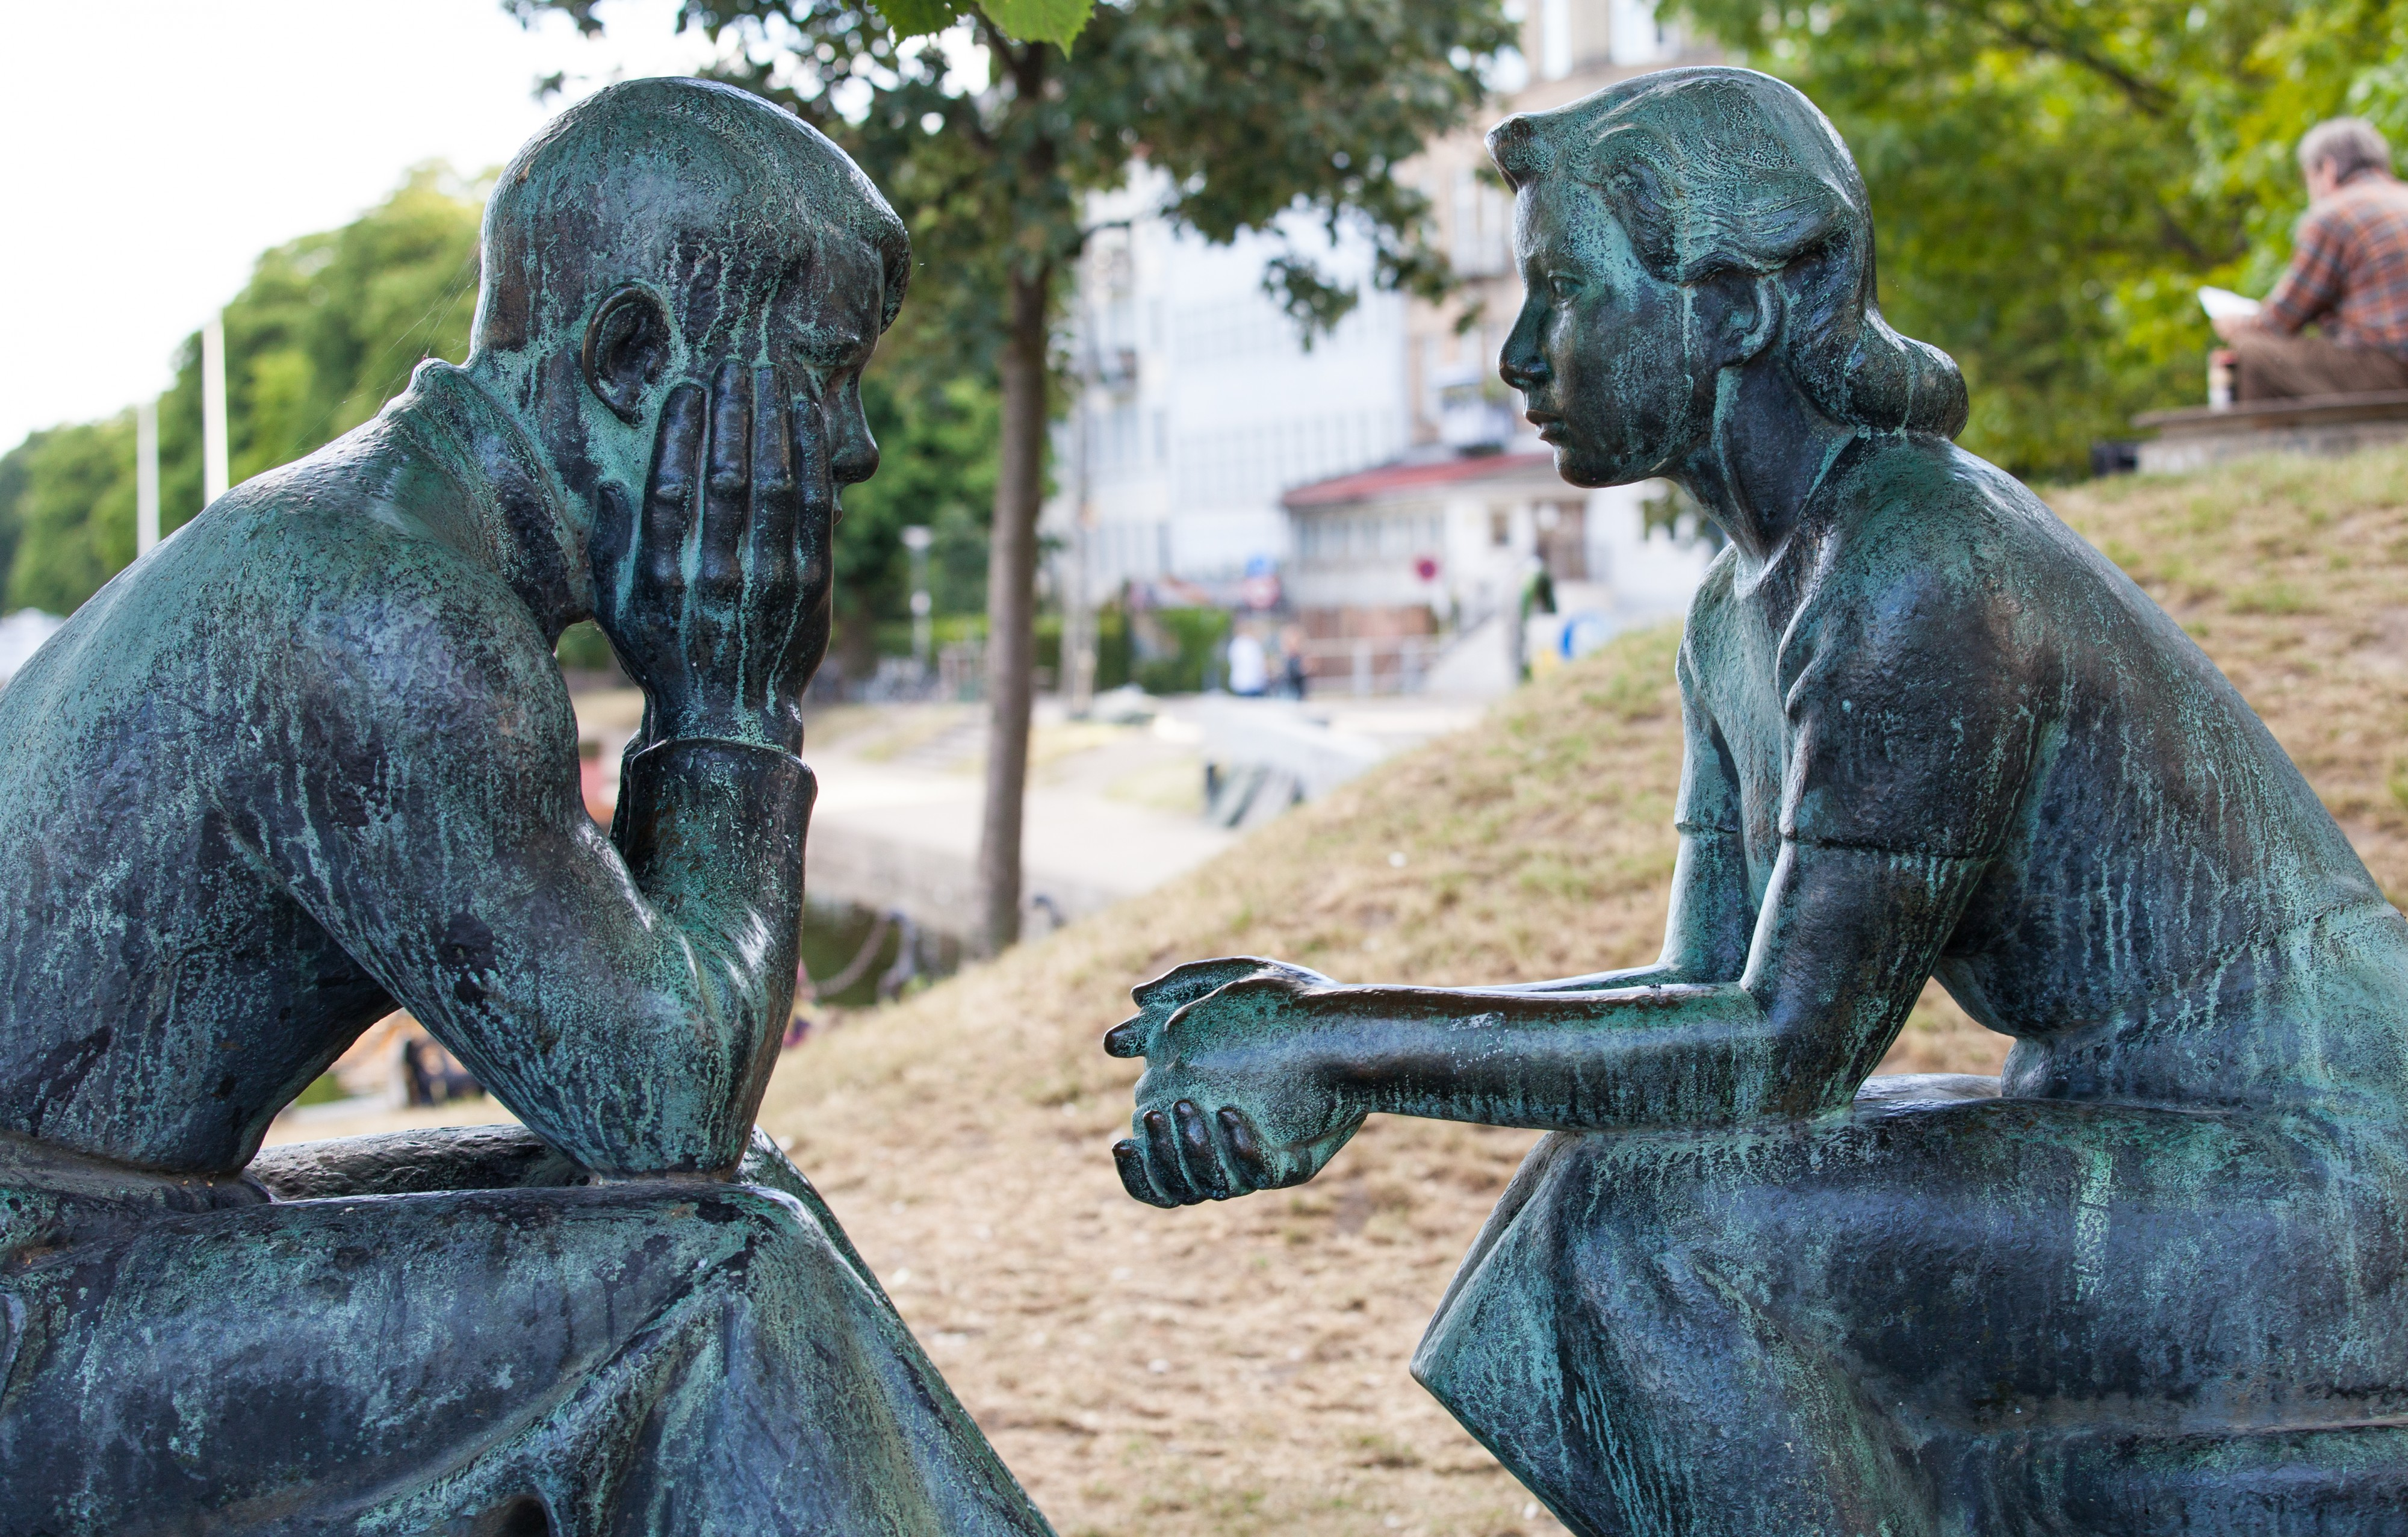 statues in Copenhagen, Denmark, June 2014, picture 56